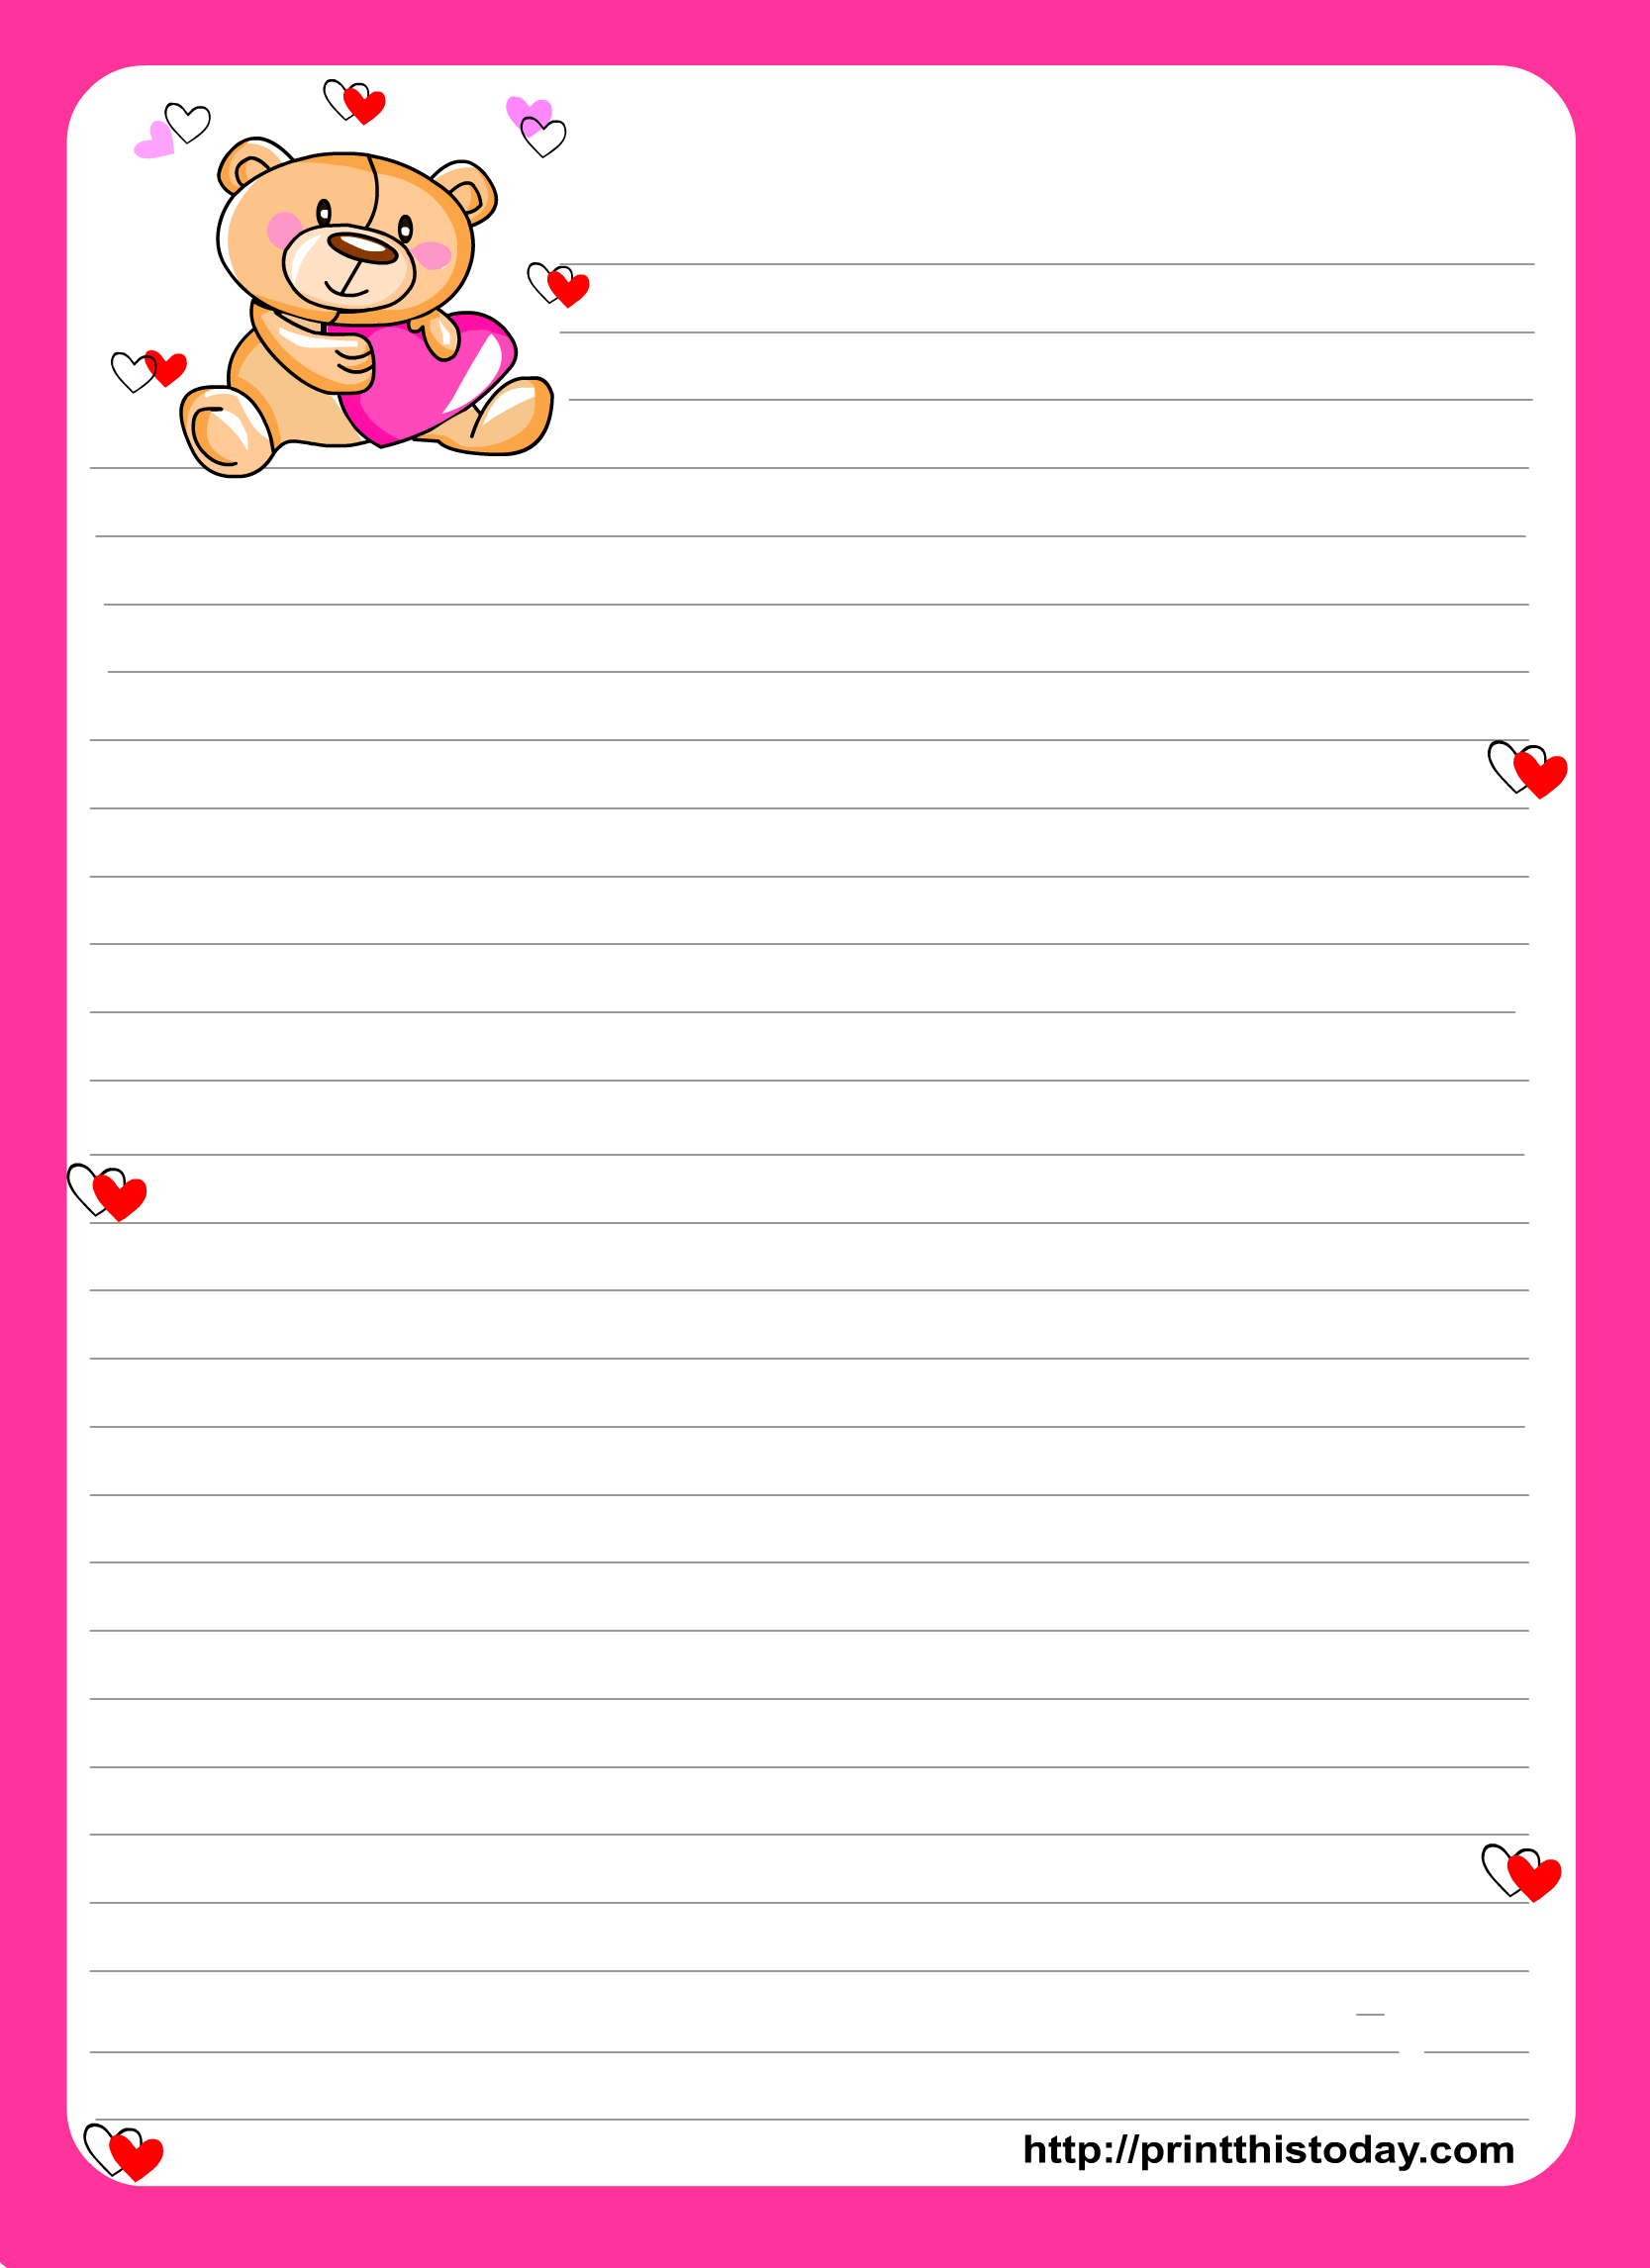 Write A Warm And Love Filled Letter To Your Sweetheart Using Any Of These  Free Printable Love Letter Pad Stationery Designs That I Have Made For You  Today.  Love Letter Templates Free